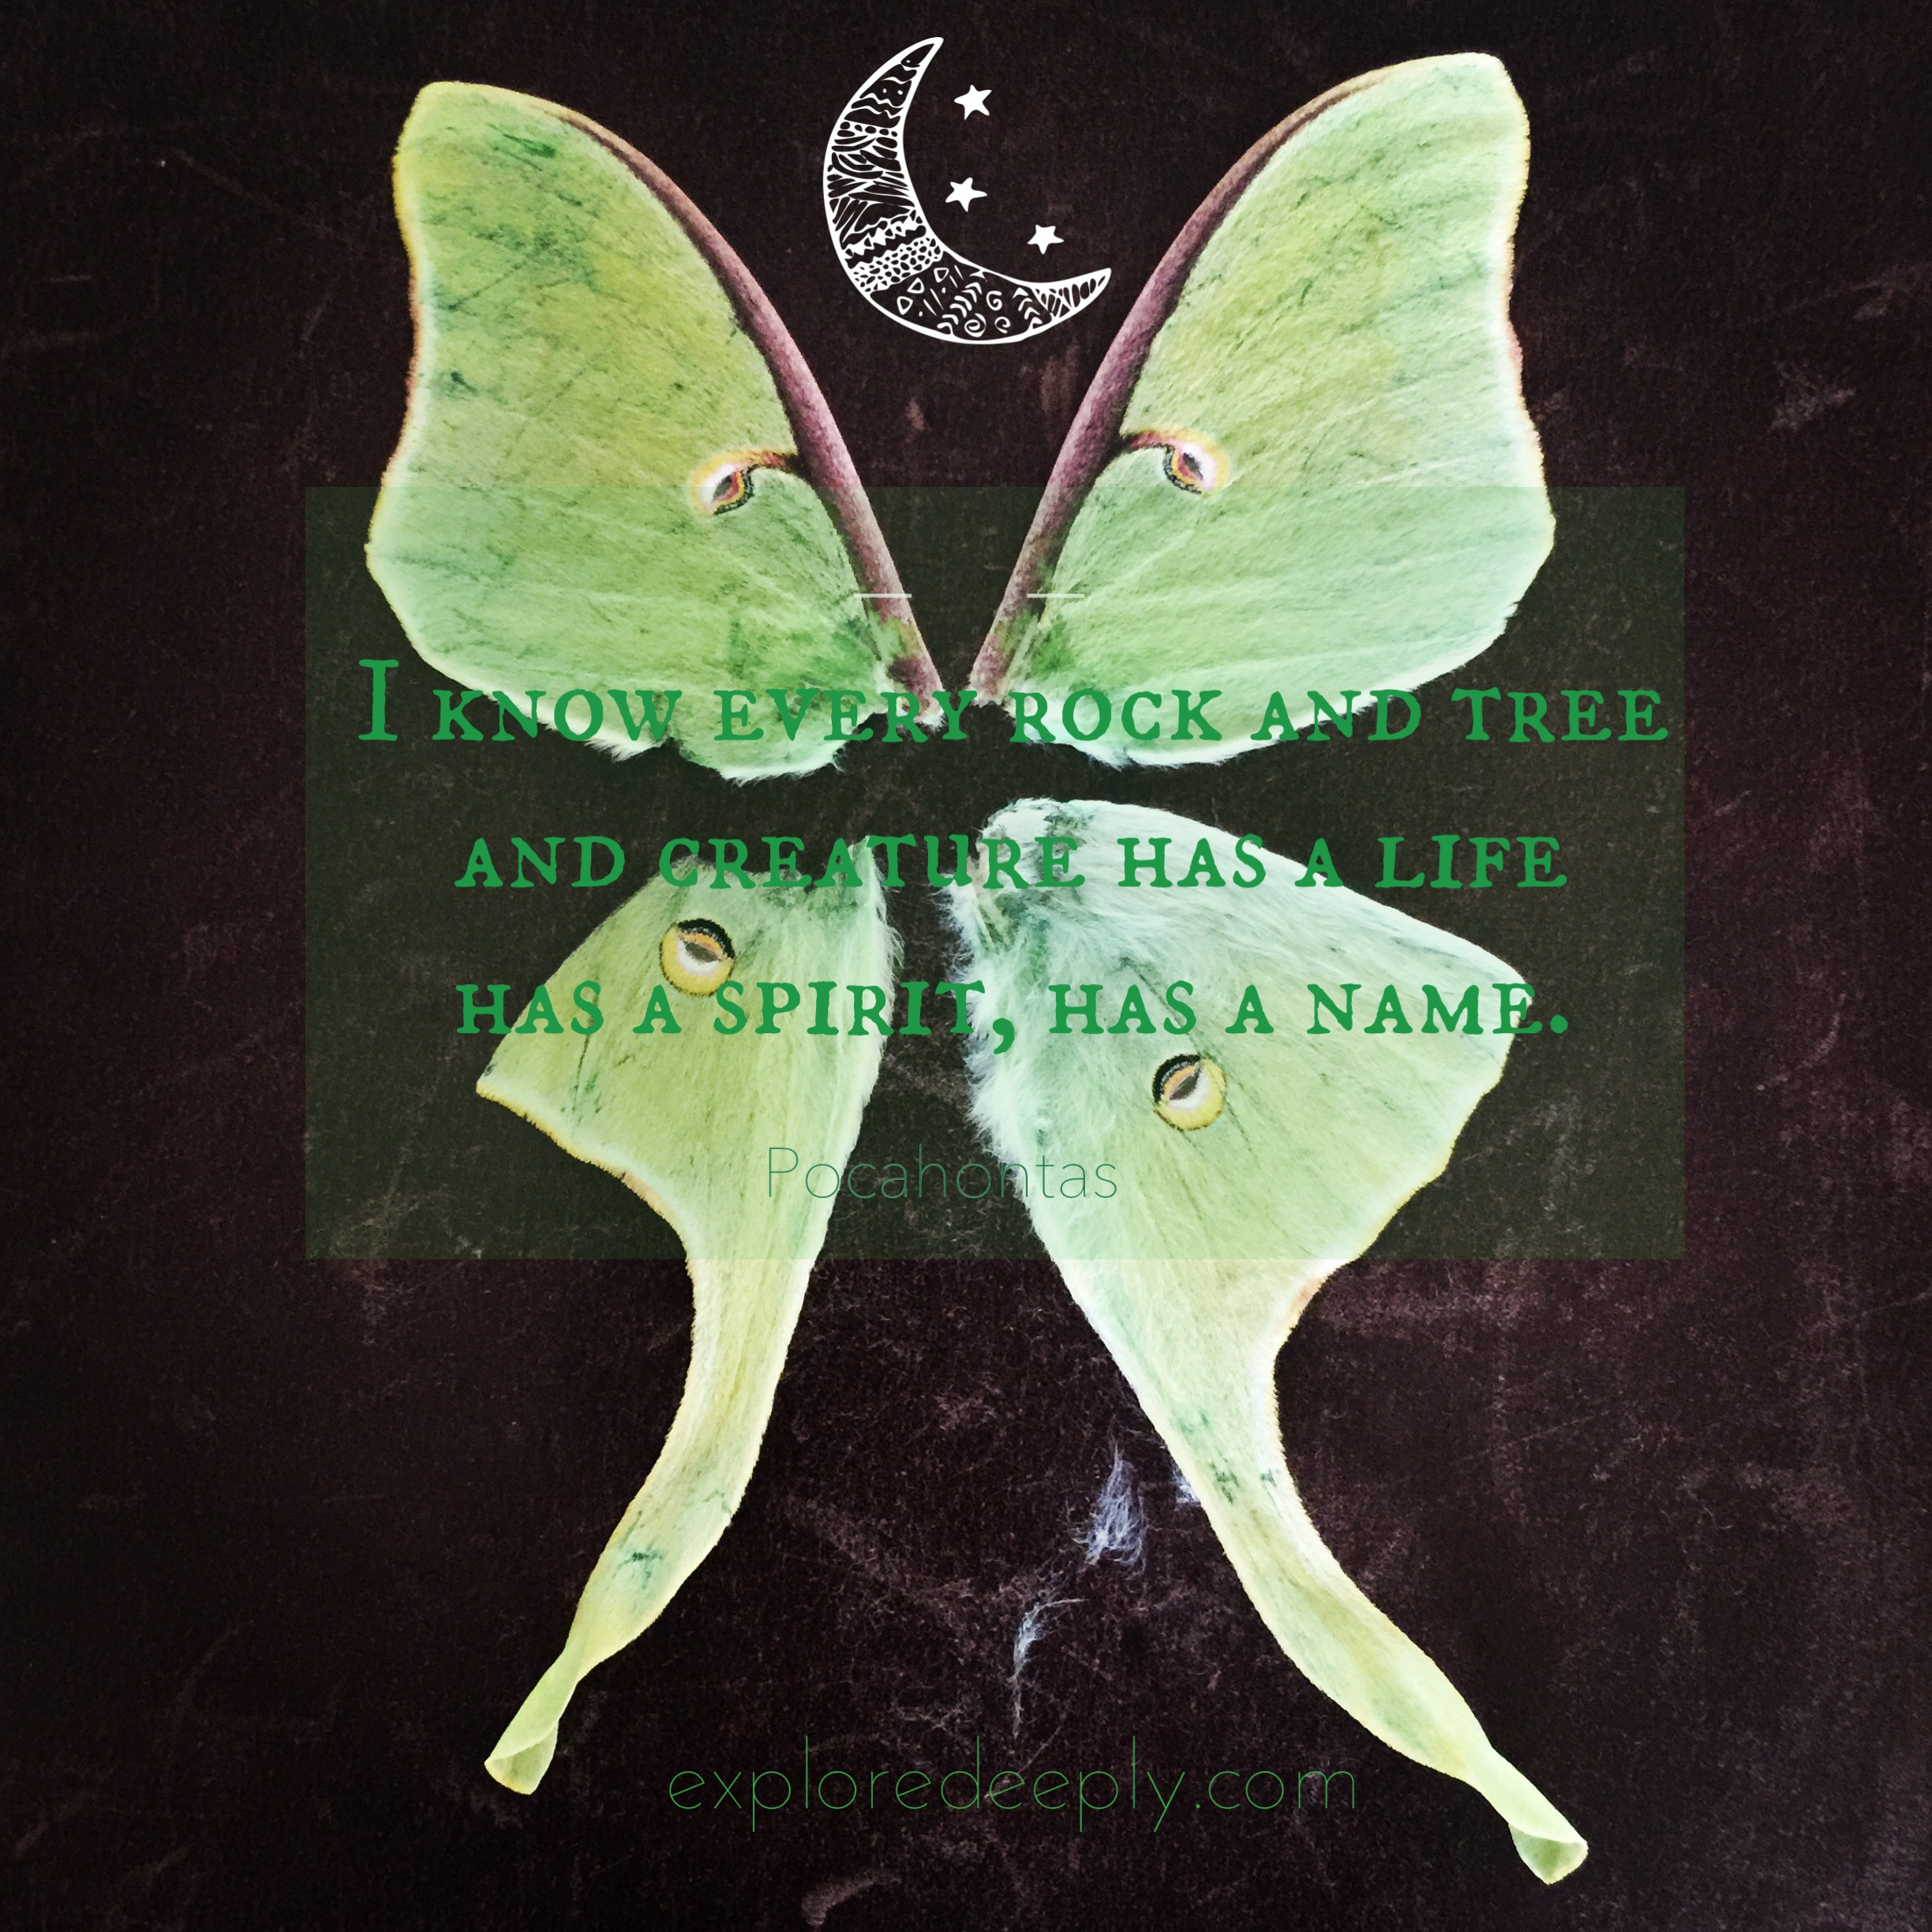 Finding a Luna Moth on my daily walk serves as a good omen for the following months, signifying the advent of change.